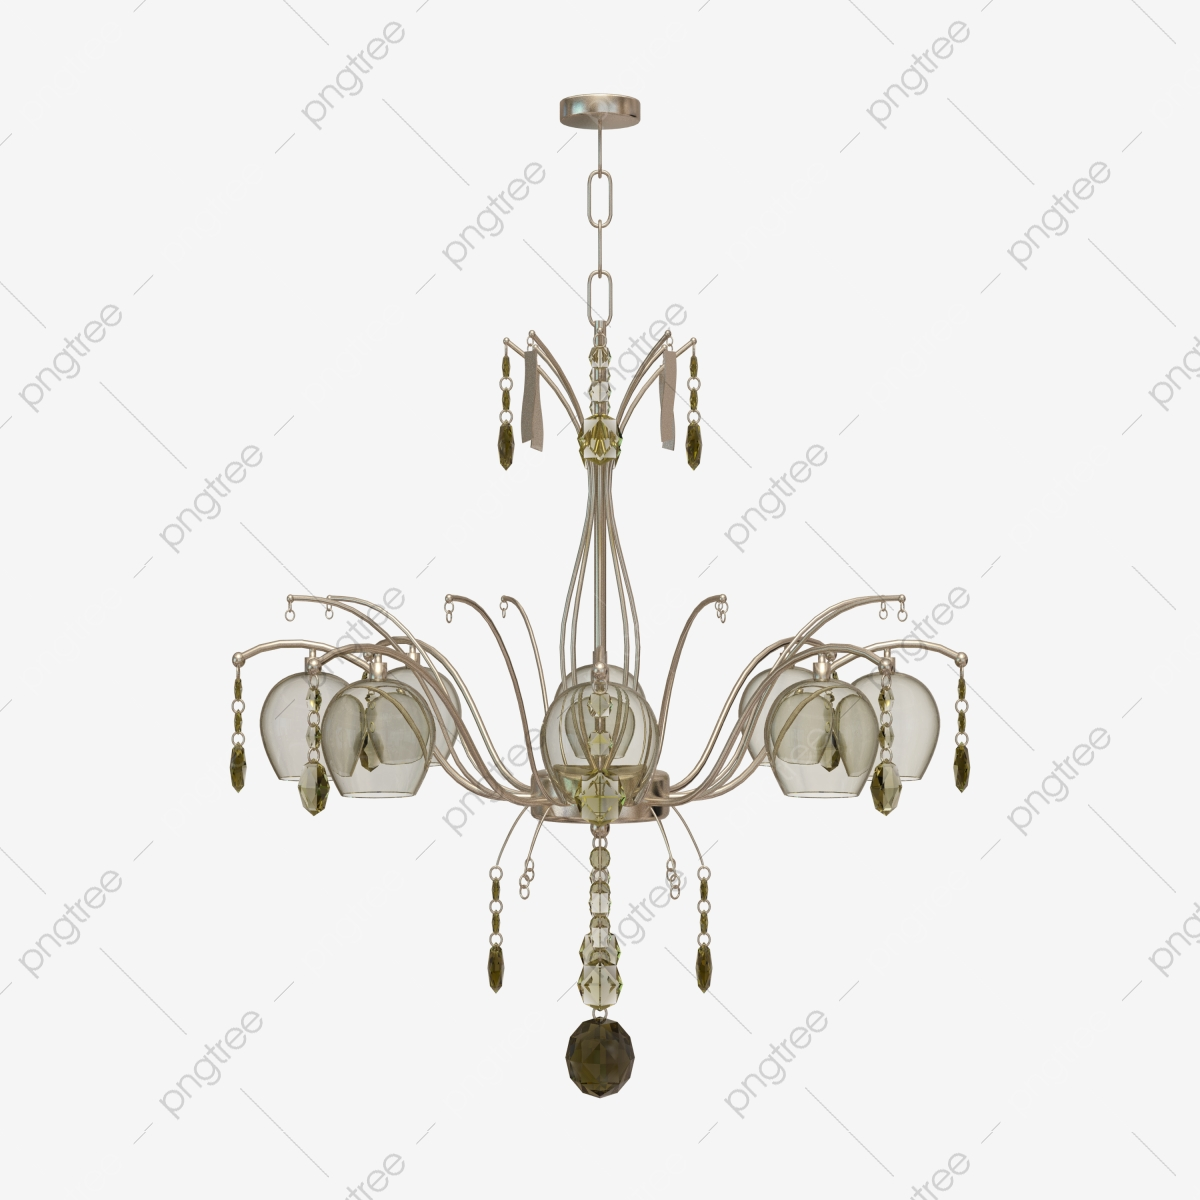 Home Lighting Chandelier Ceiling Lamp Home Lighting Lighting Chandeliers Png Transparent Clipart Image And Psd File For Free Download